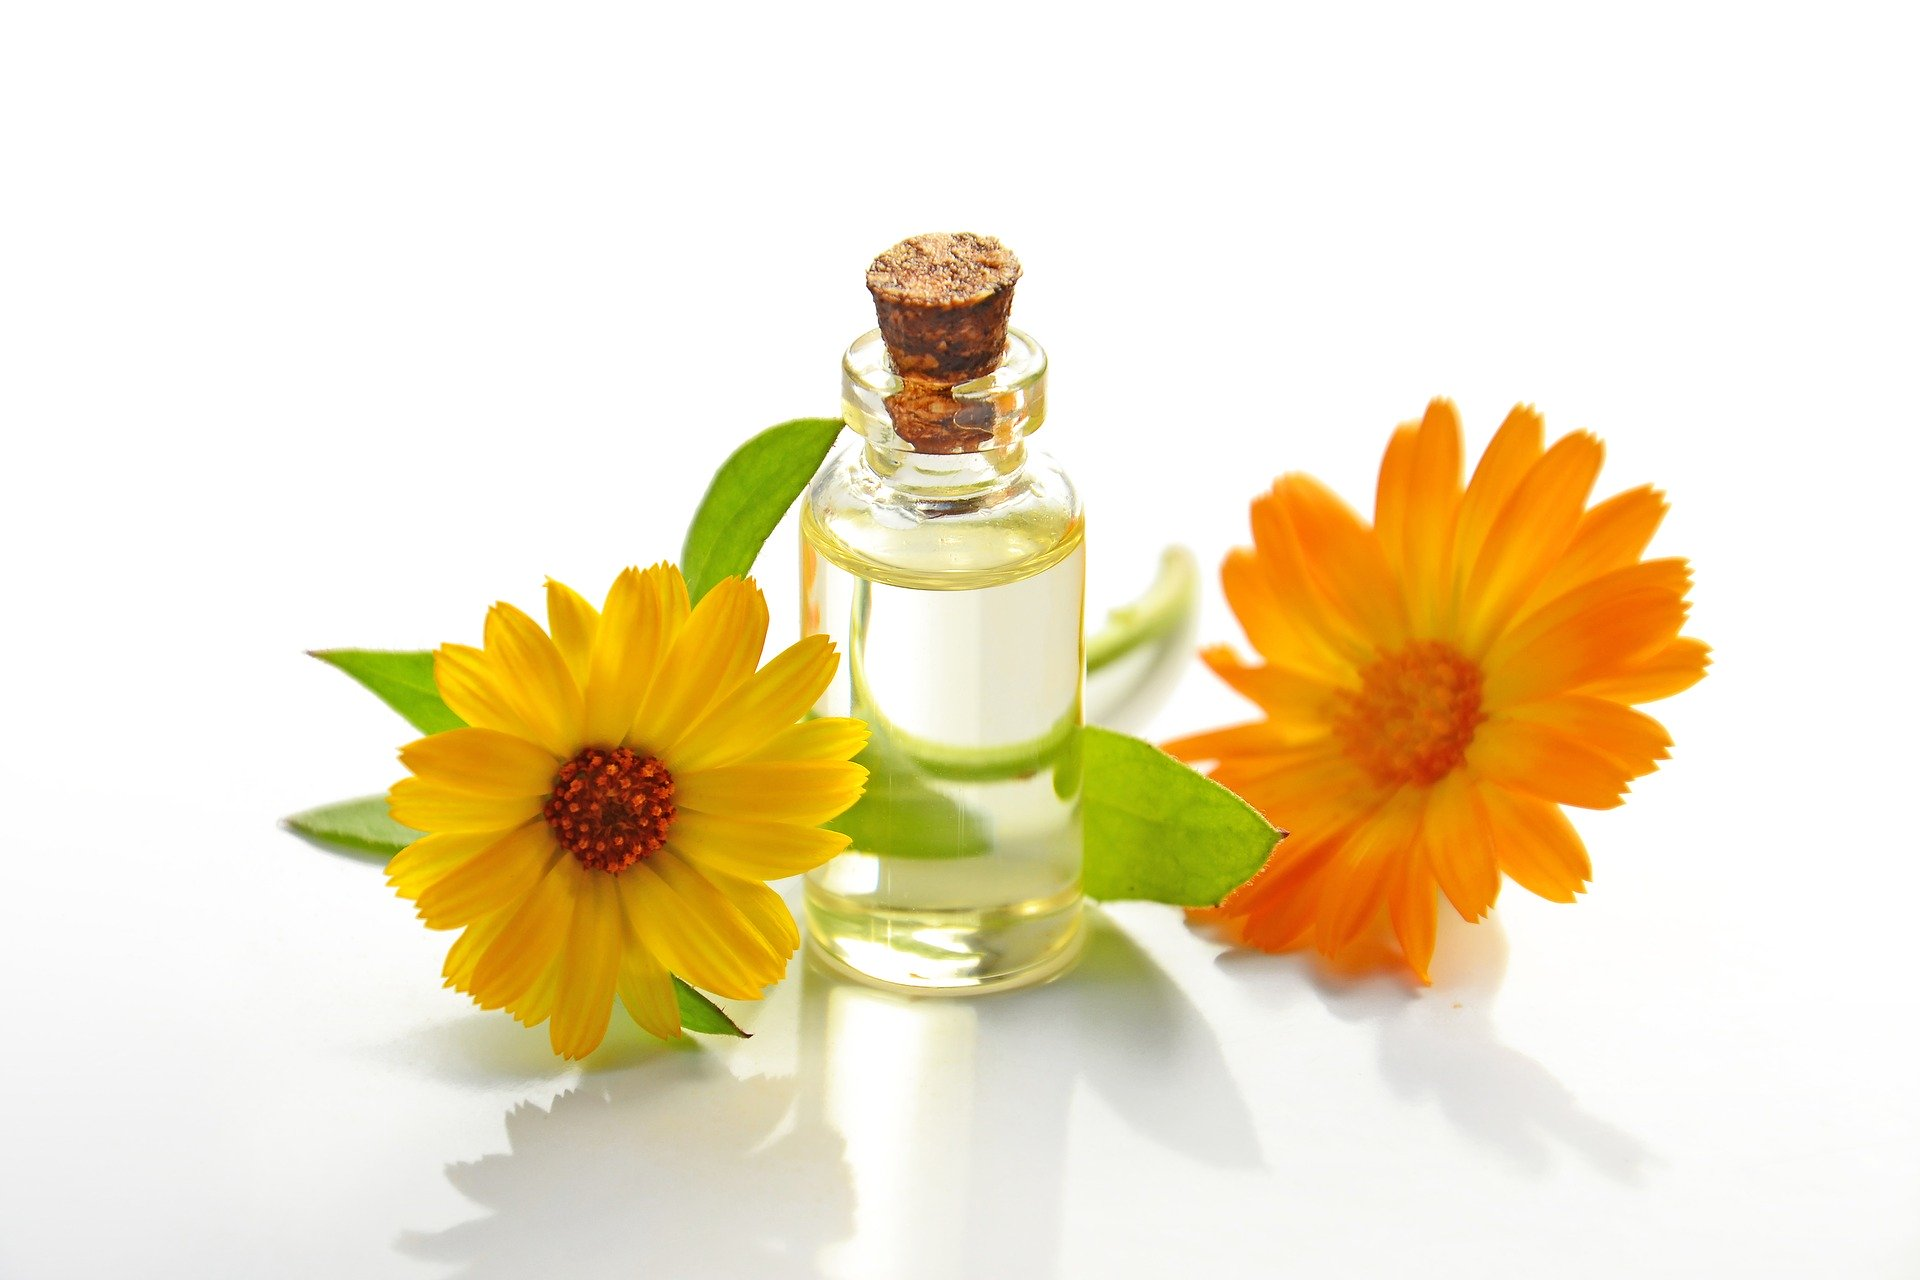 essential oils in a vial with two flowers